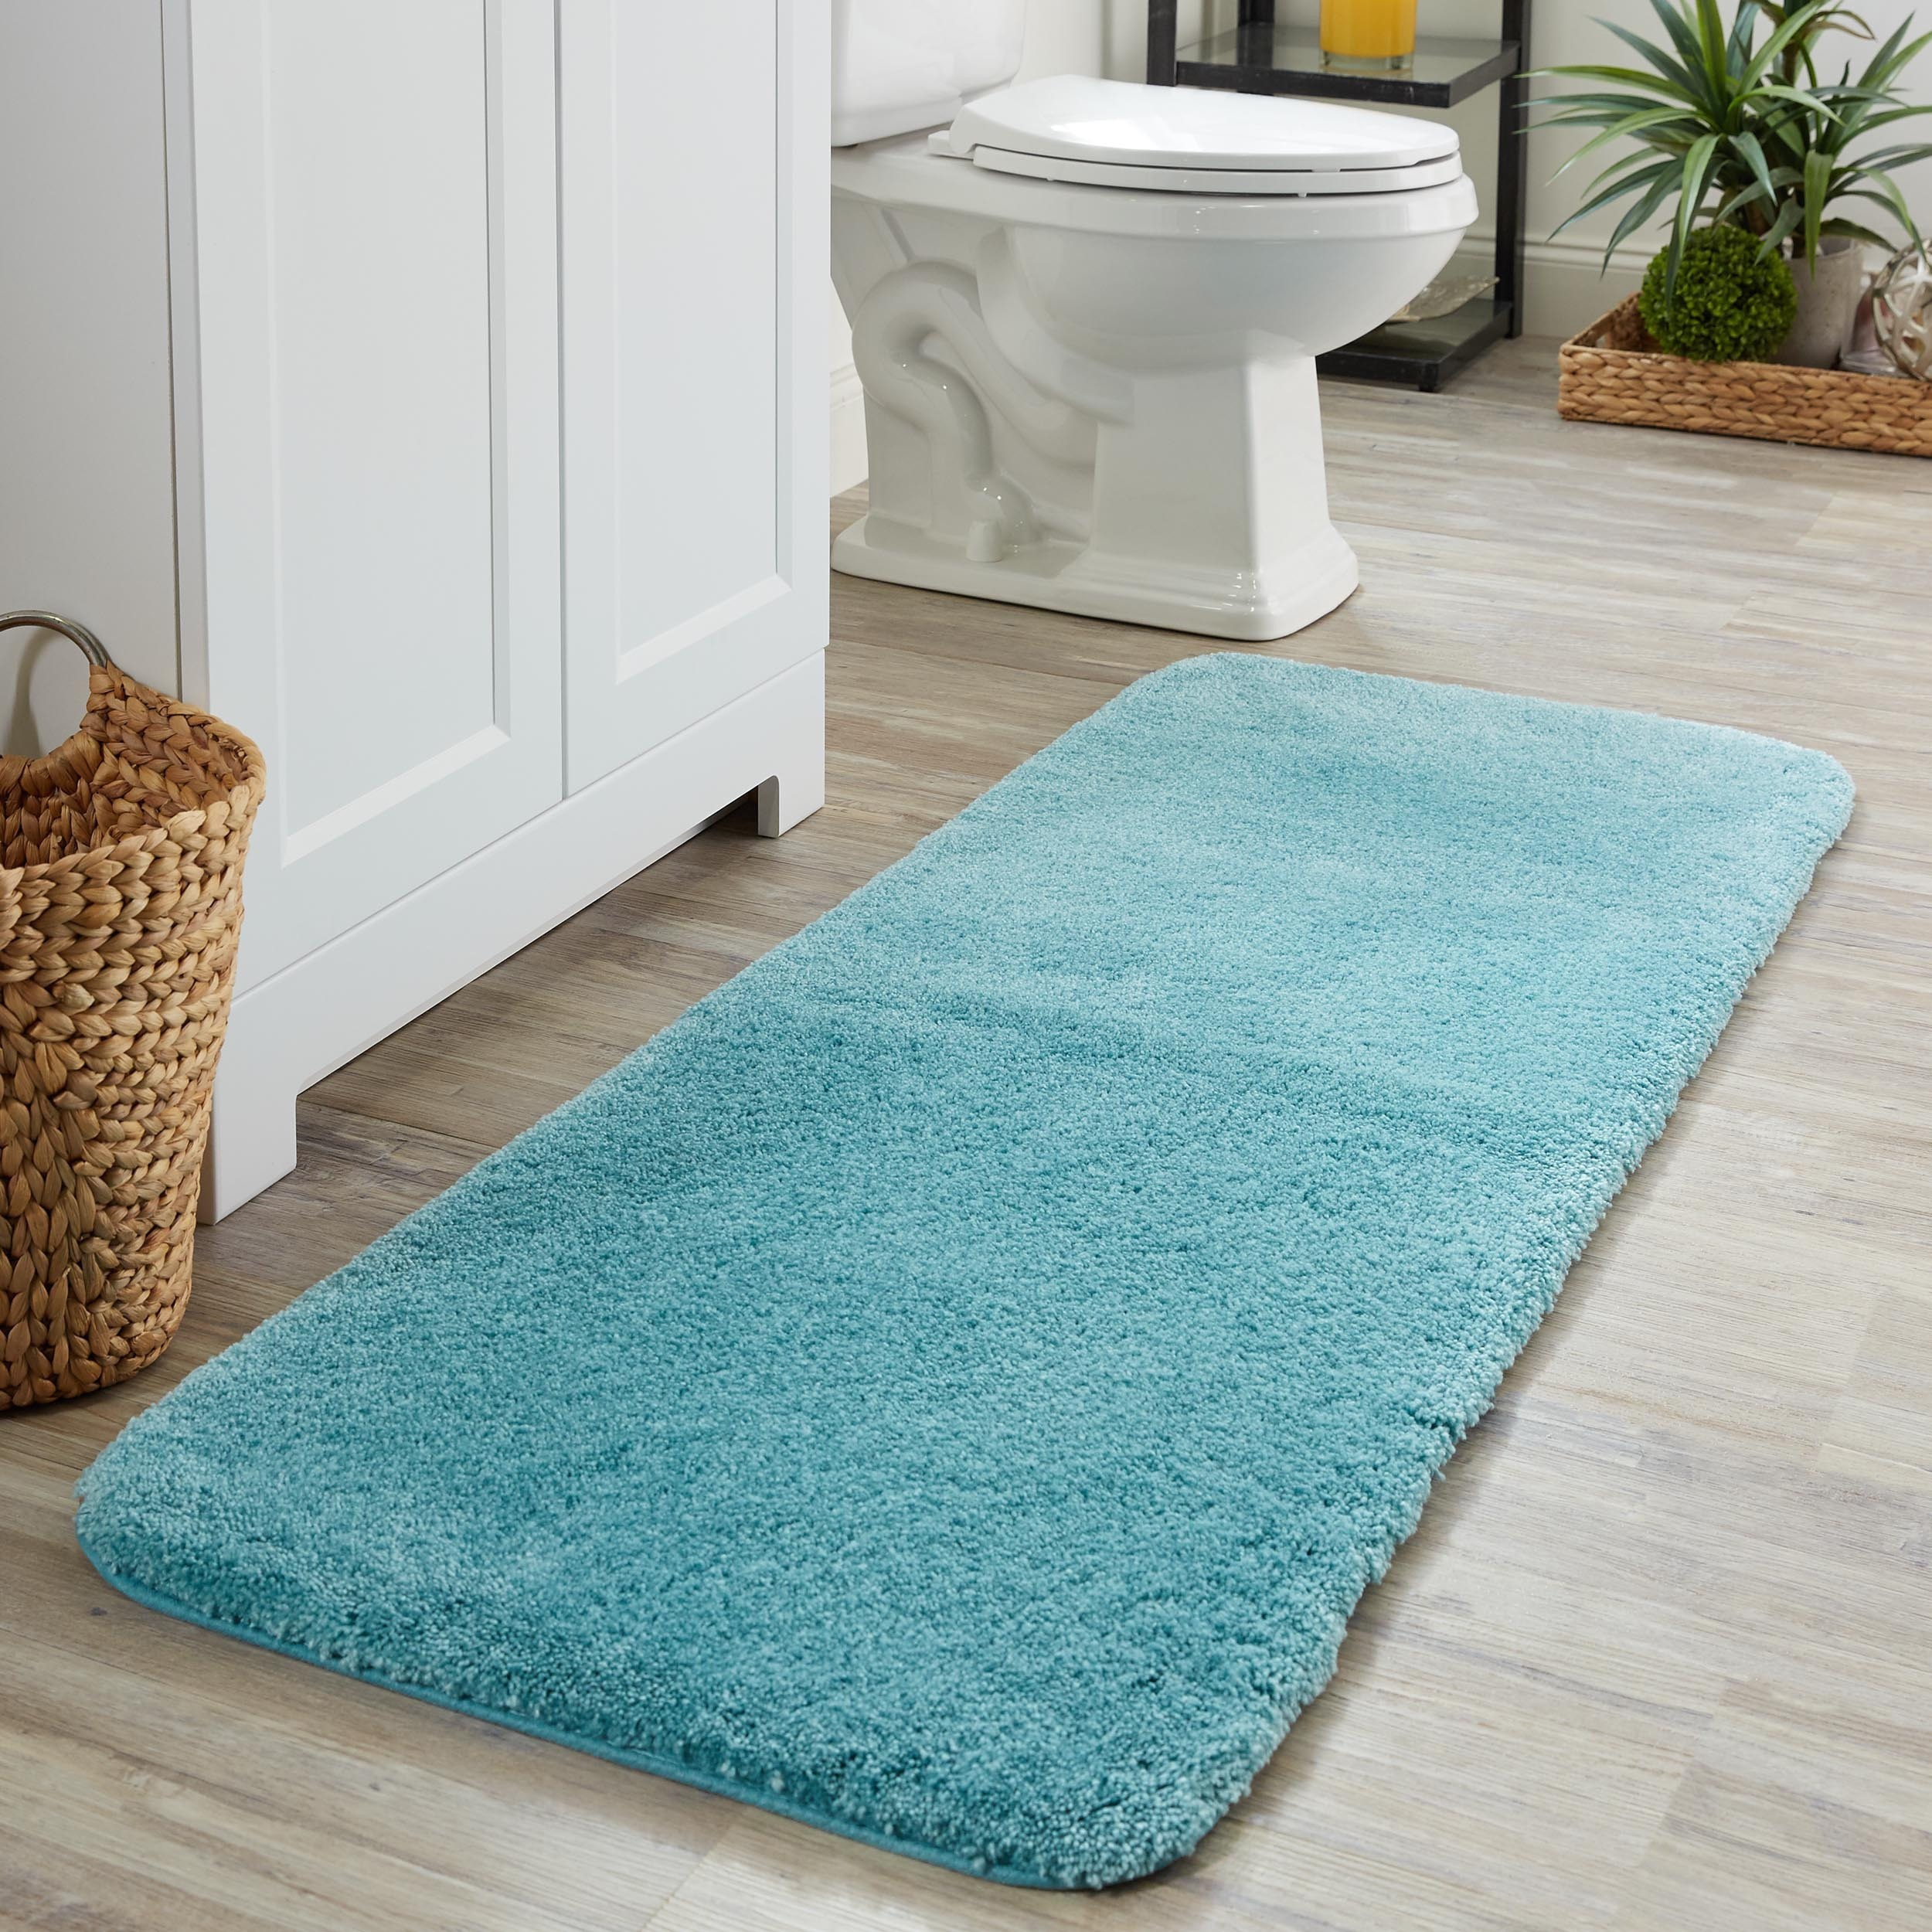 Mohawk Spa Bath Rug 2 X5 Com Ping The Best Deals On Rugs